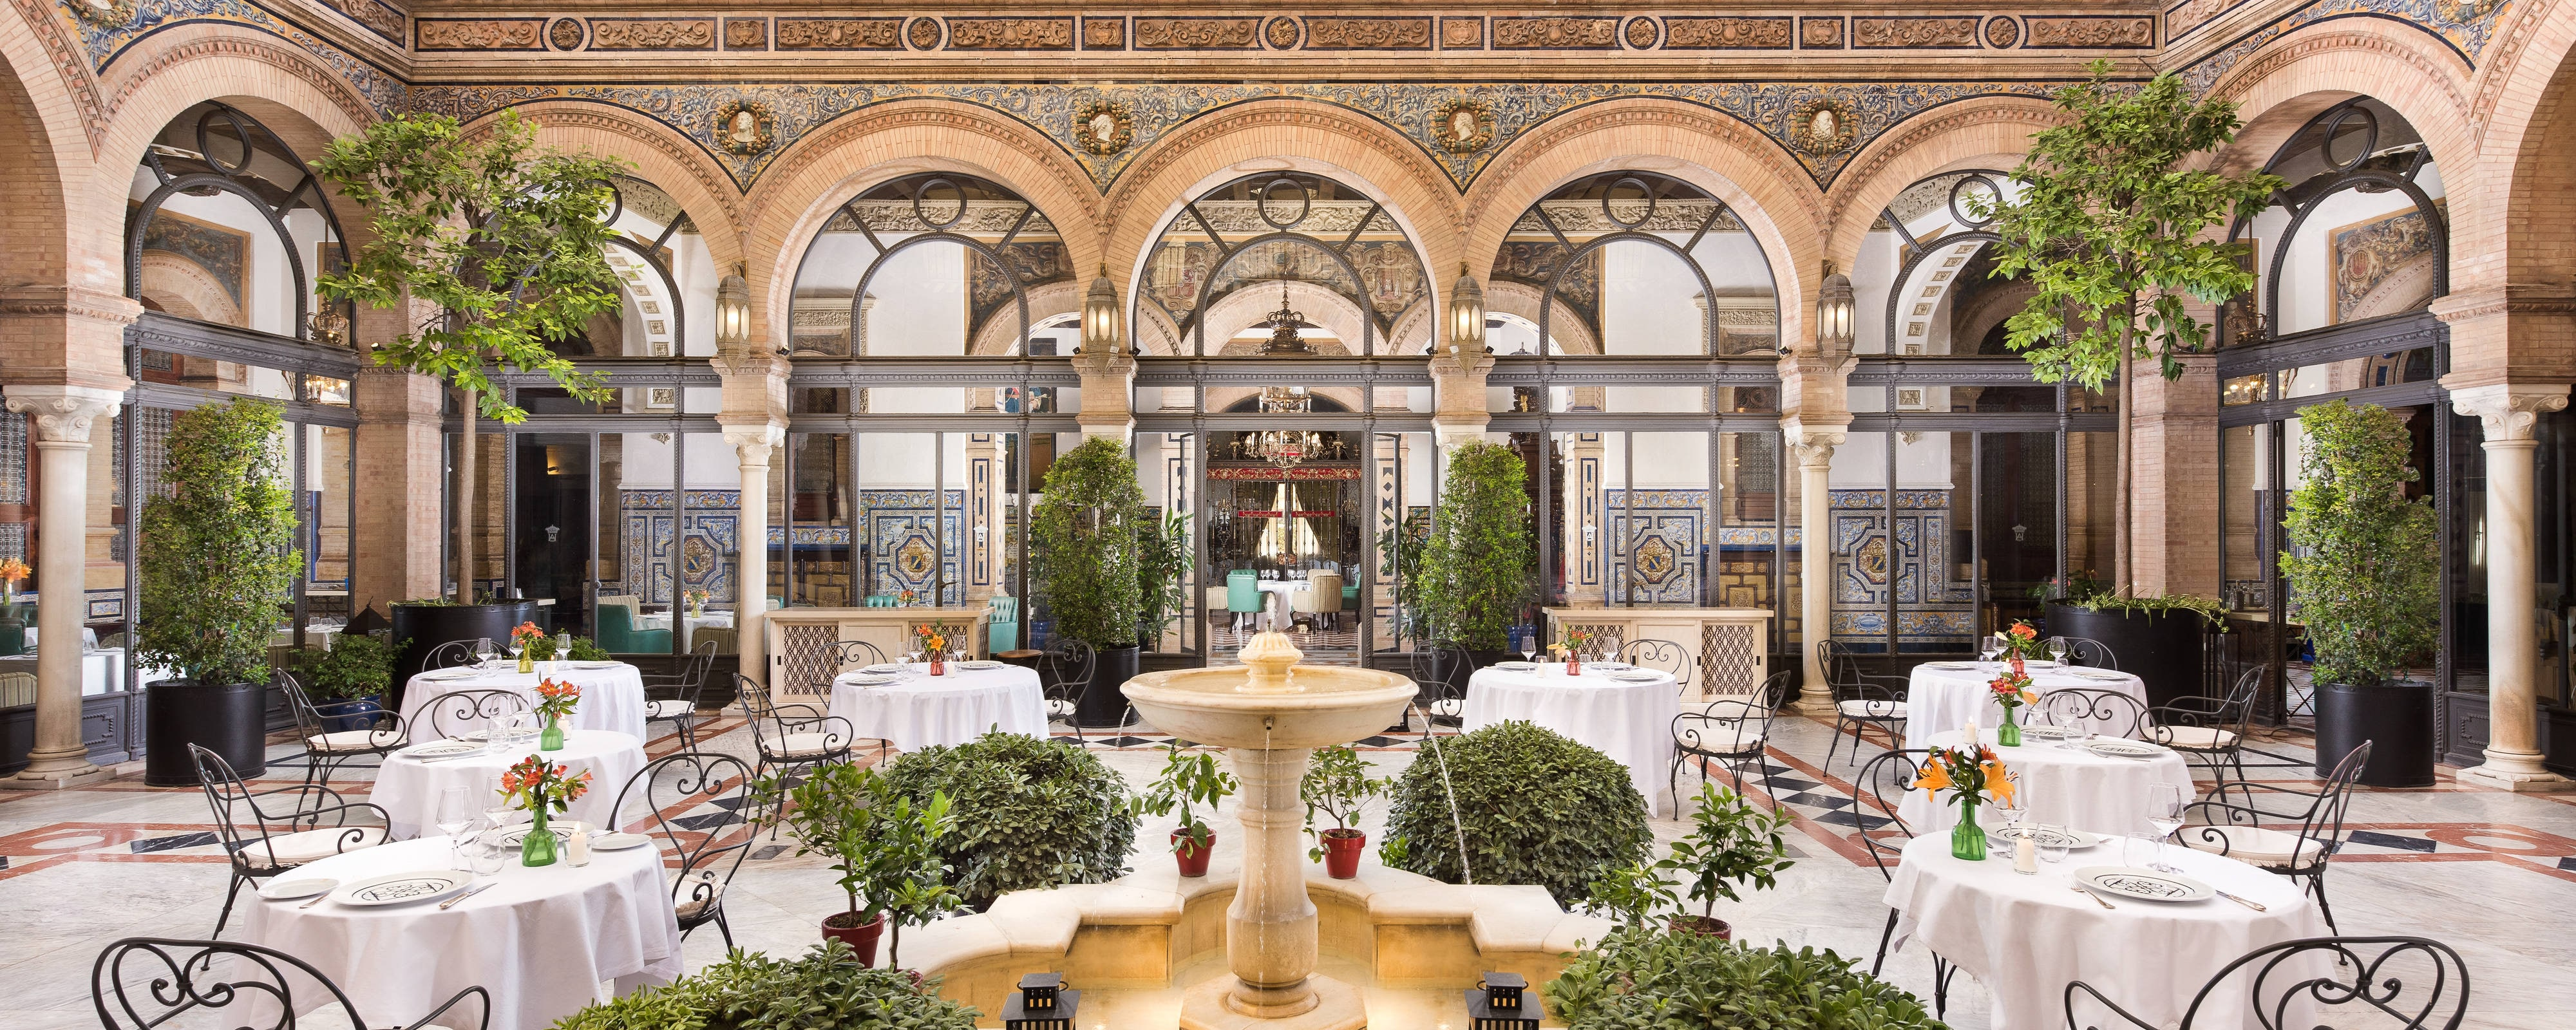 Culinary Experiences In Seville At Hotel Alfonso Xiii A